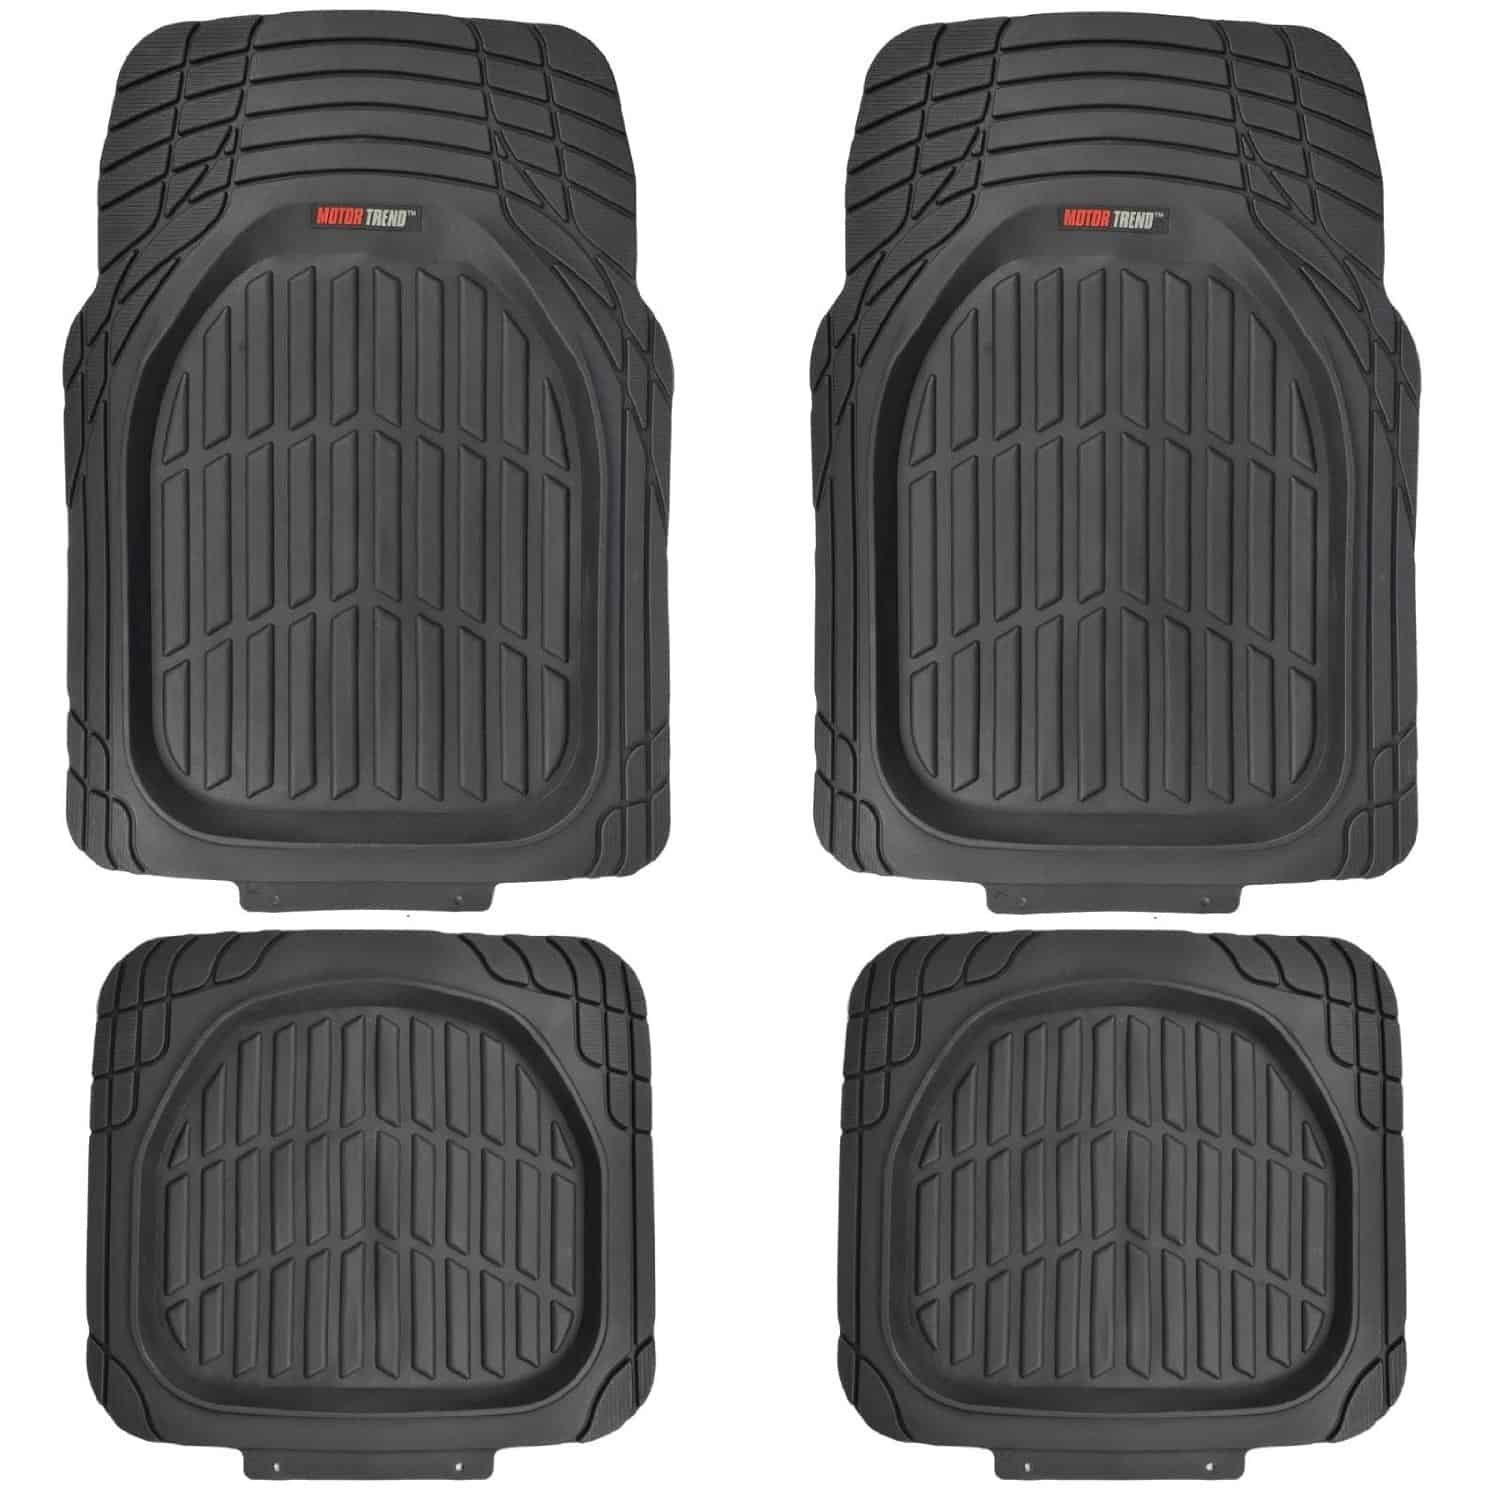 7 Best Floor Mats For Cars Trucks And Suv S In 2018